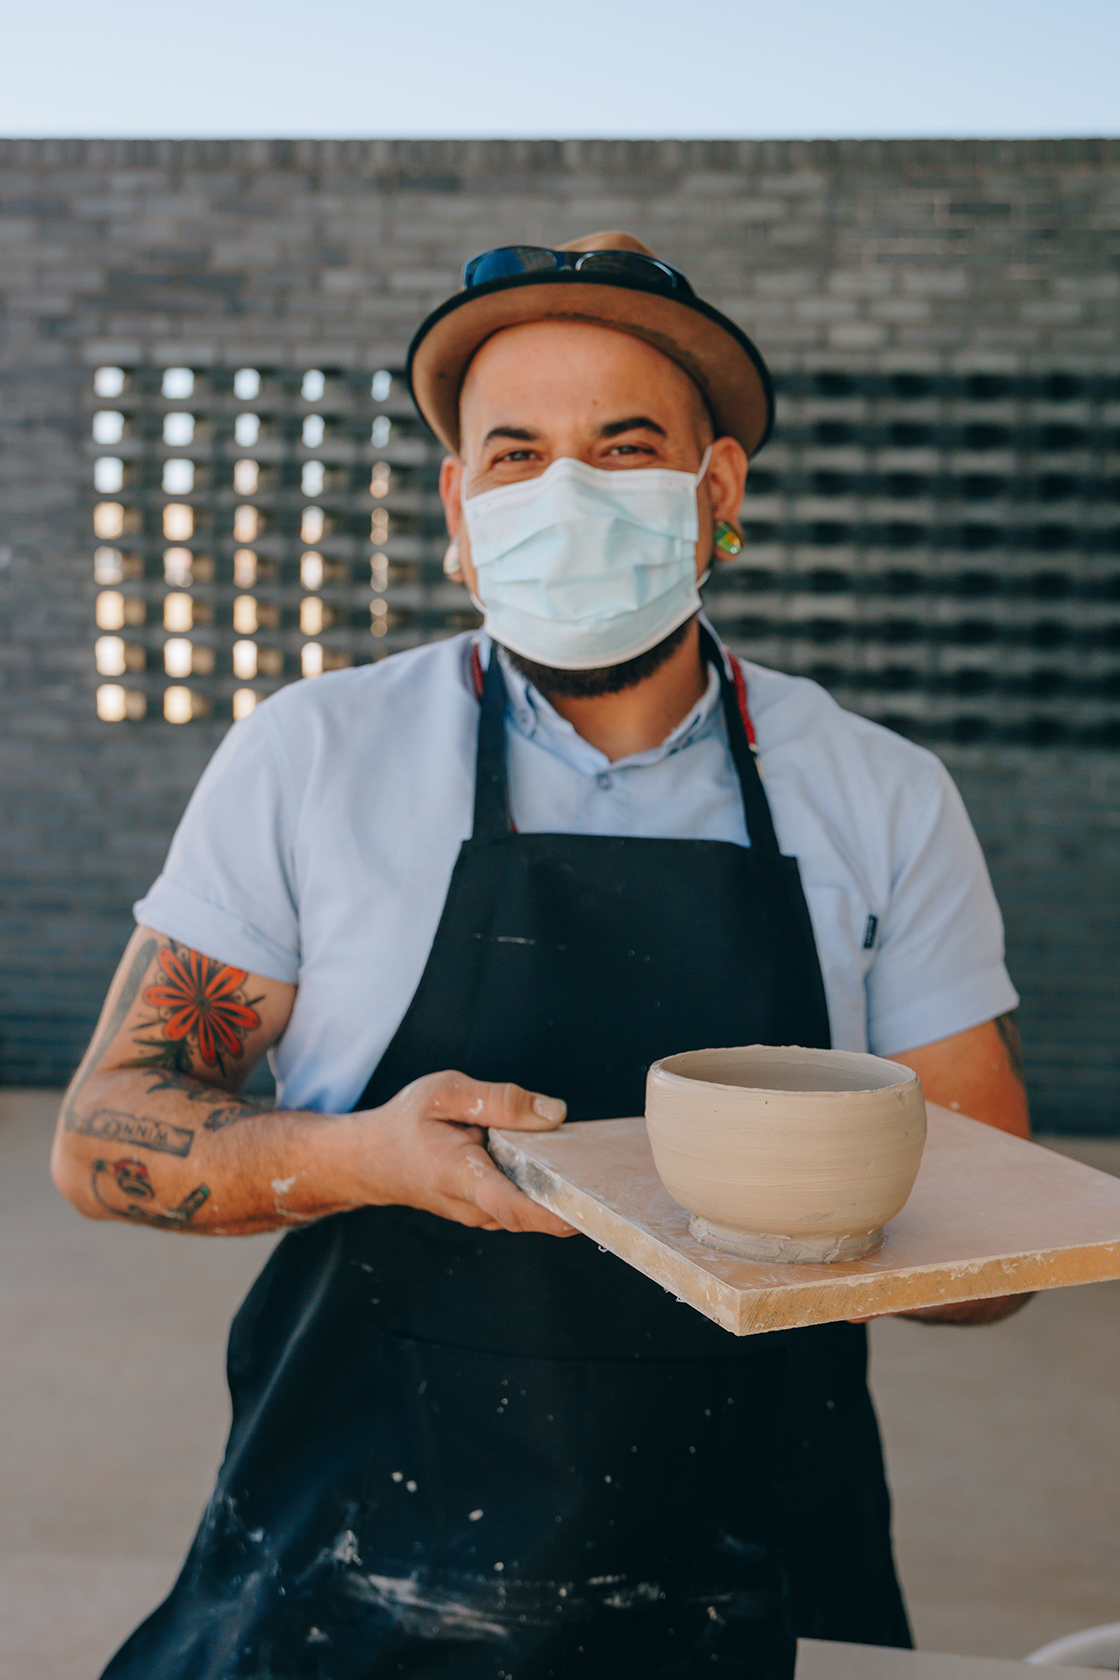 A person in a mask and a studio apron holding ceramic bowl on tray with wall in background